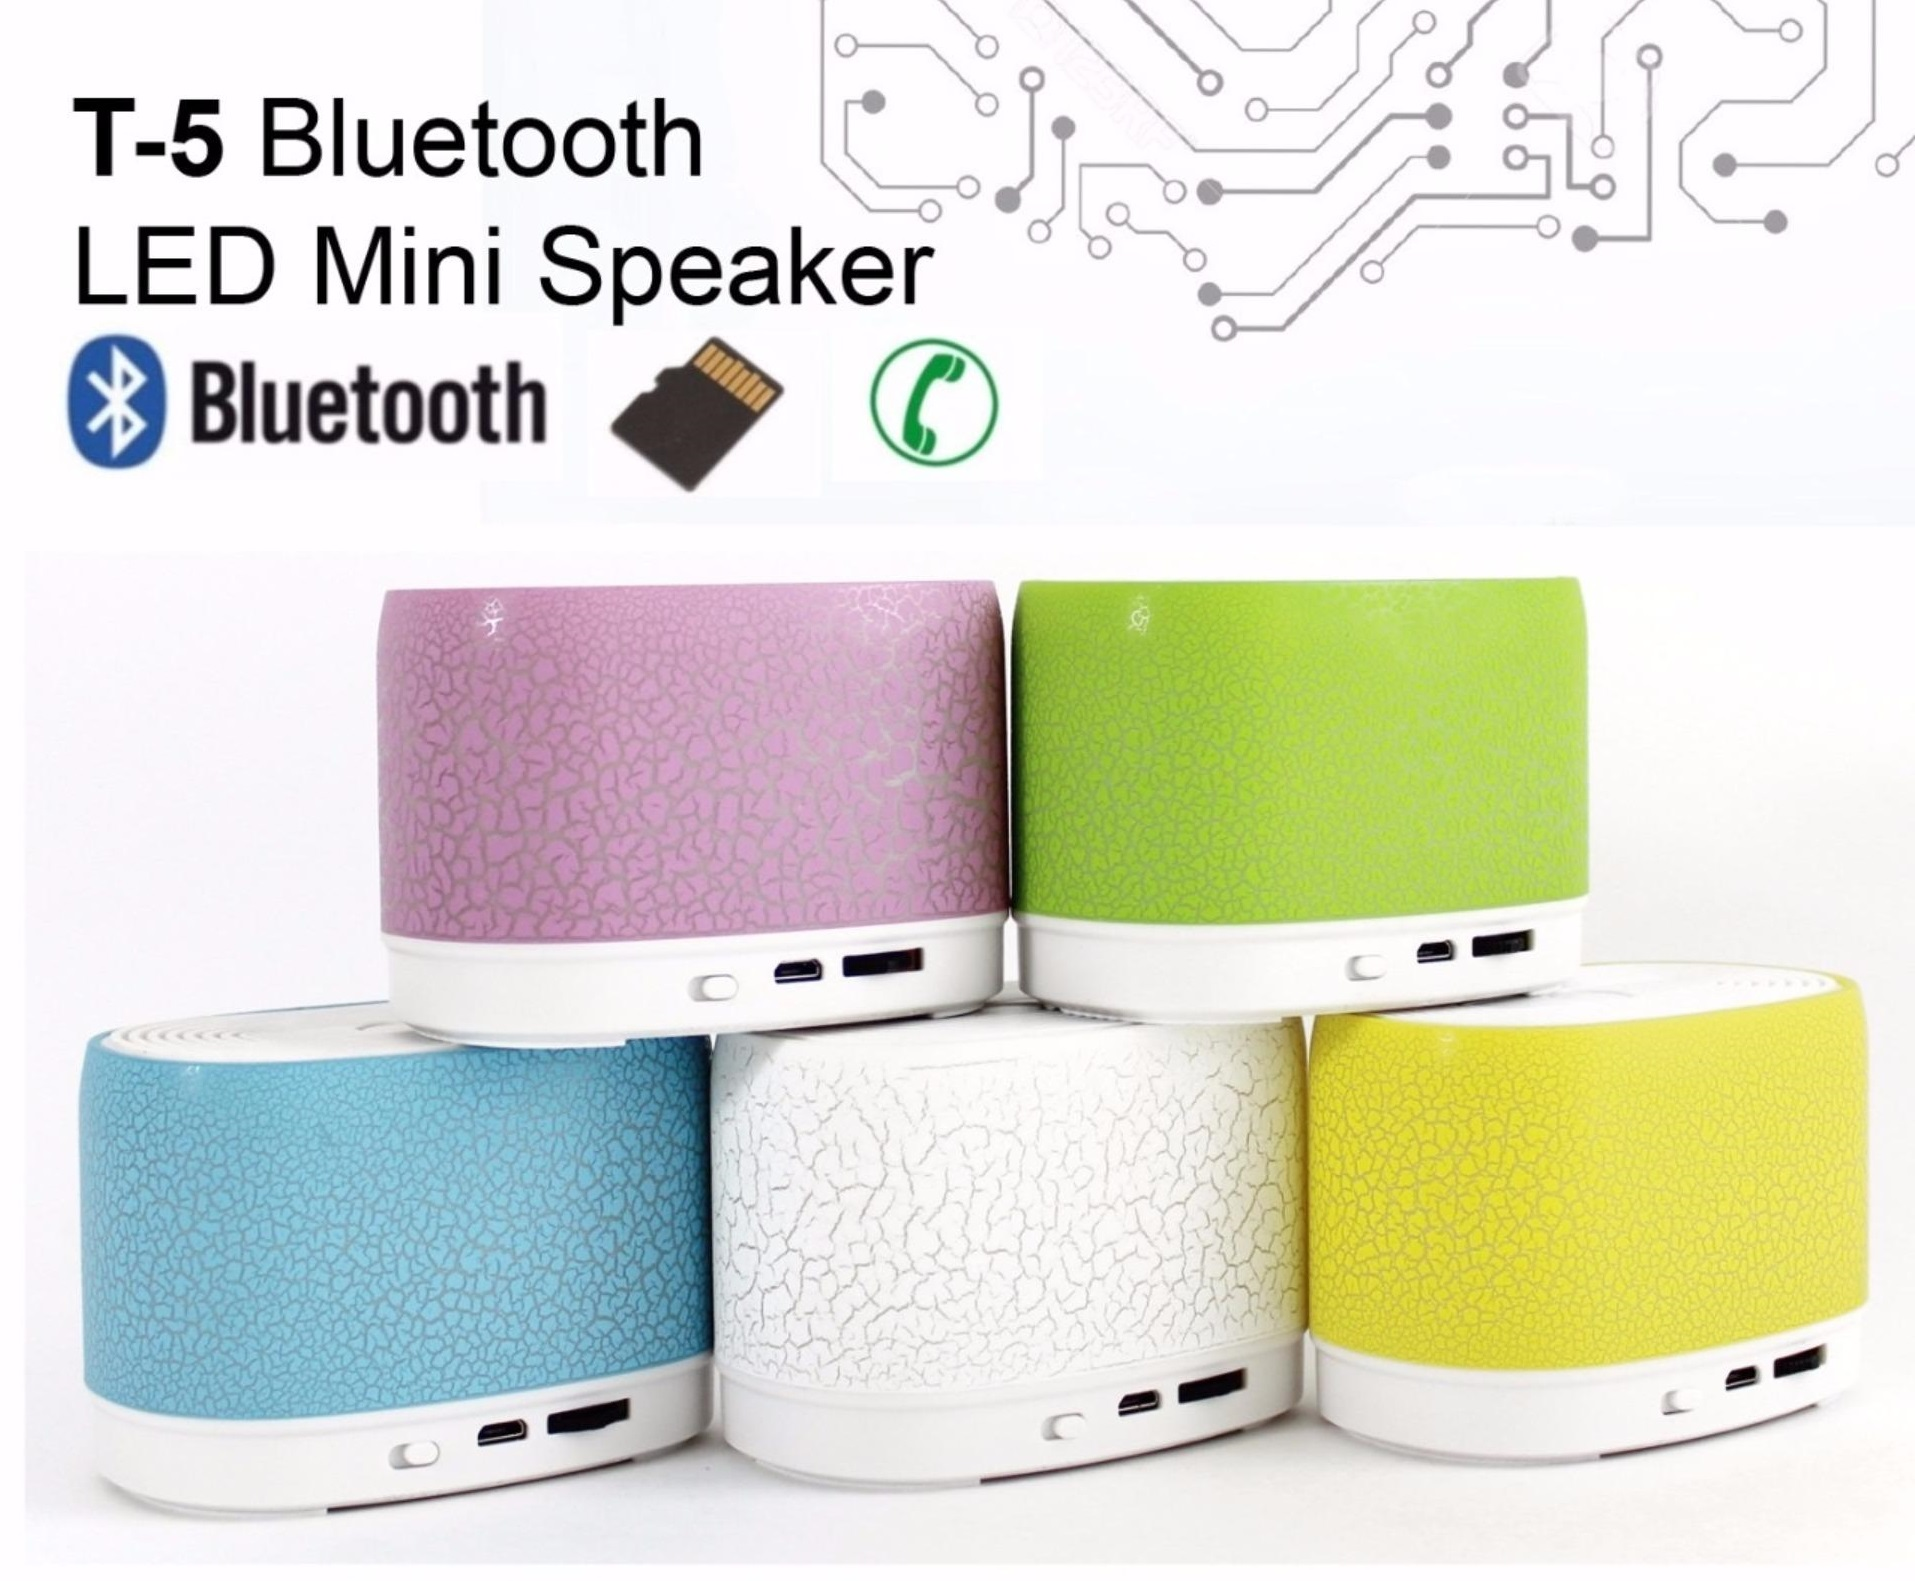 parlante t5 - bluetooth/fm/usb/sd